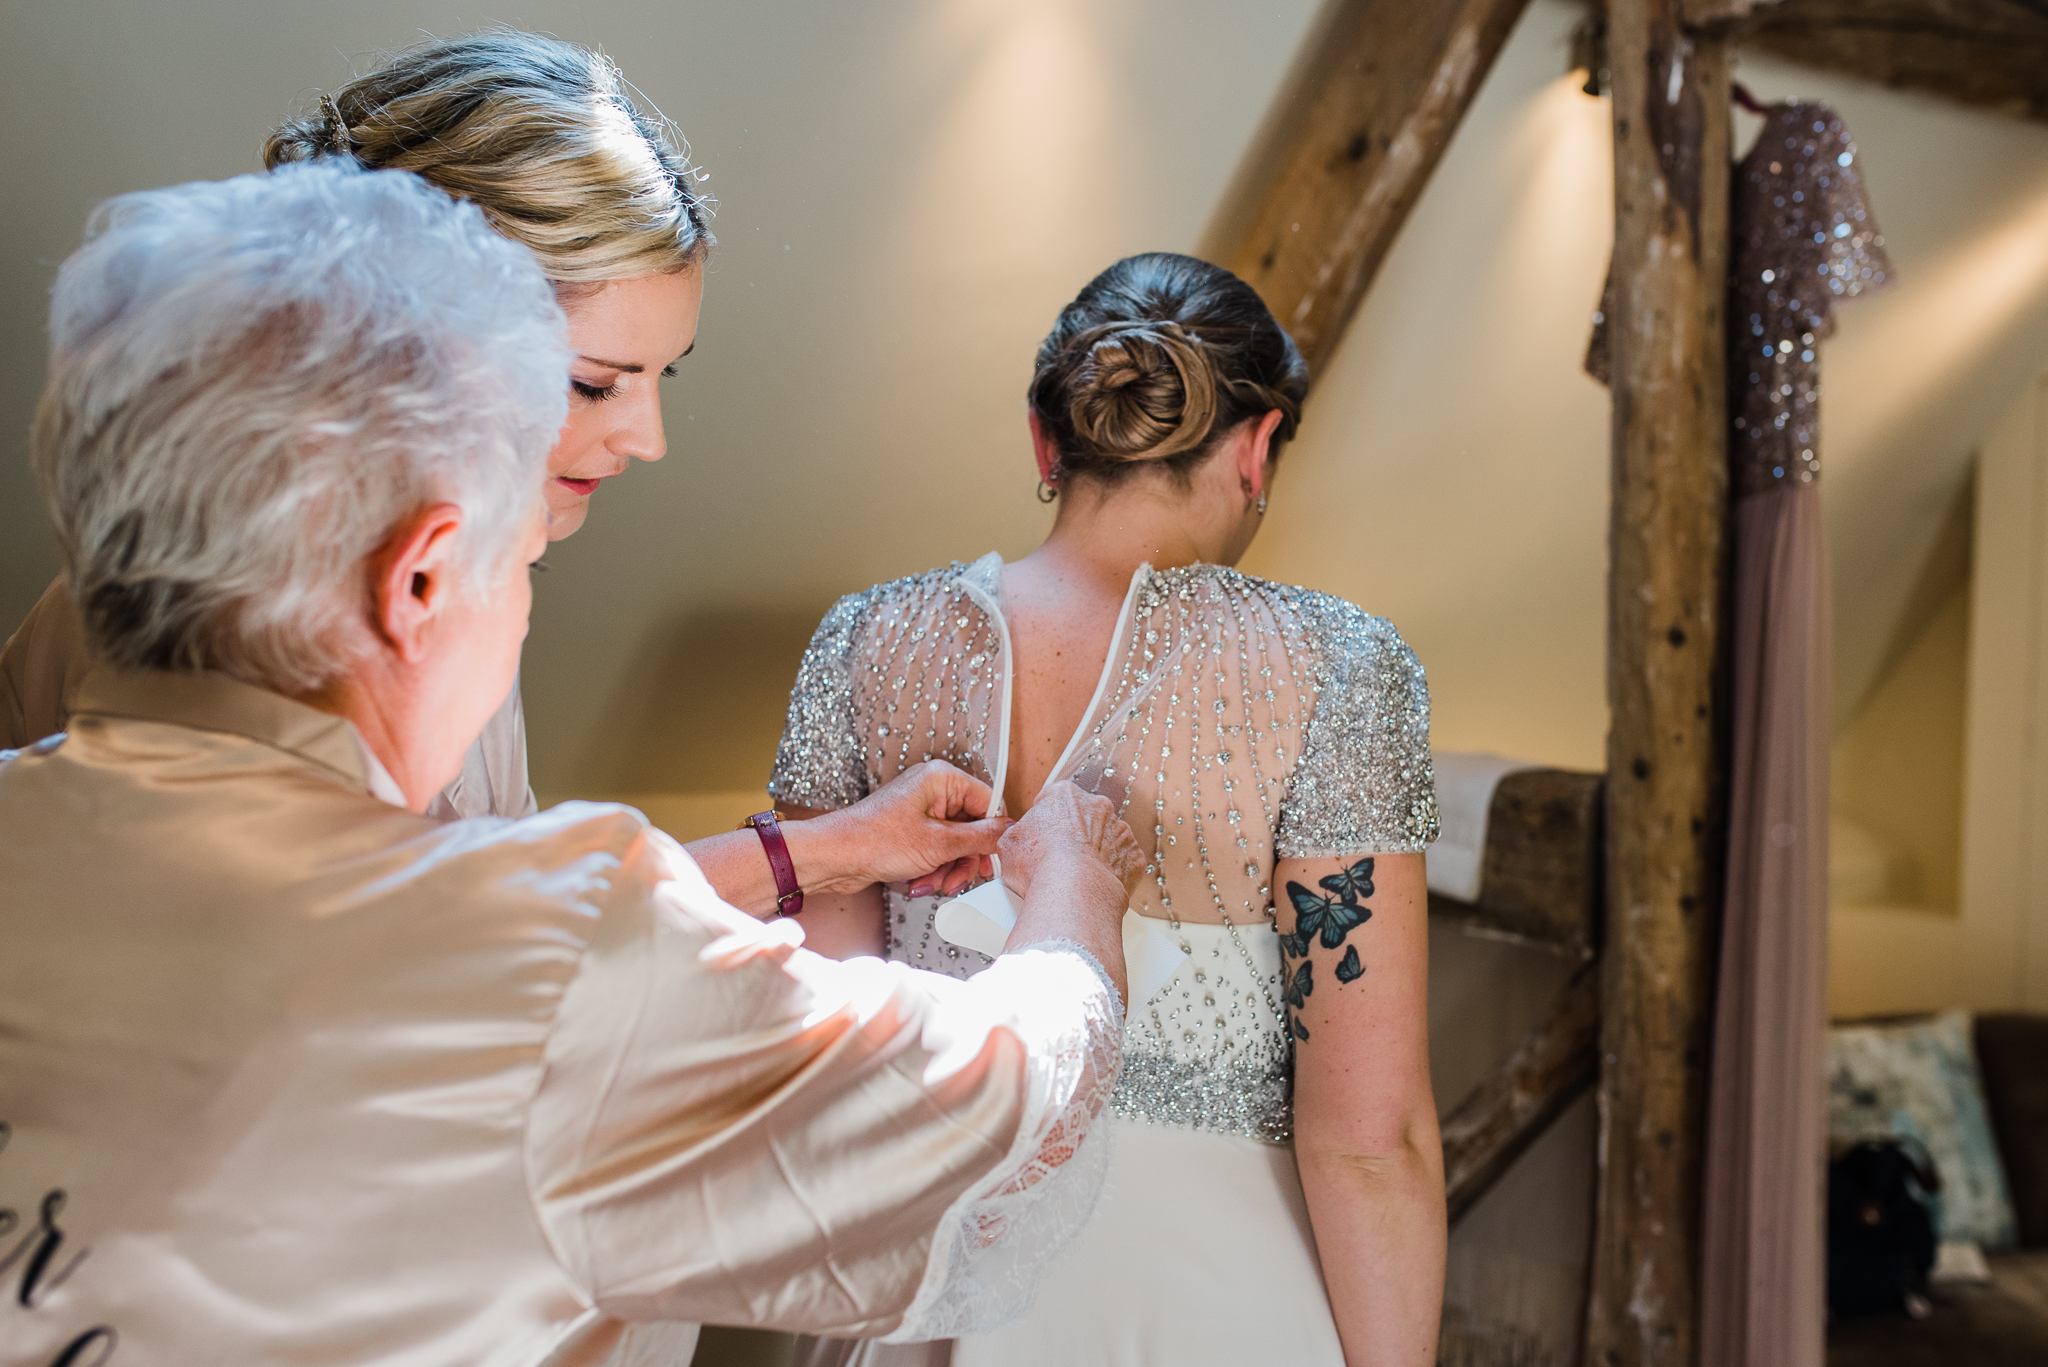 Zipping up brides dress in Lapstone Barn